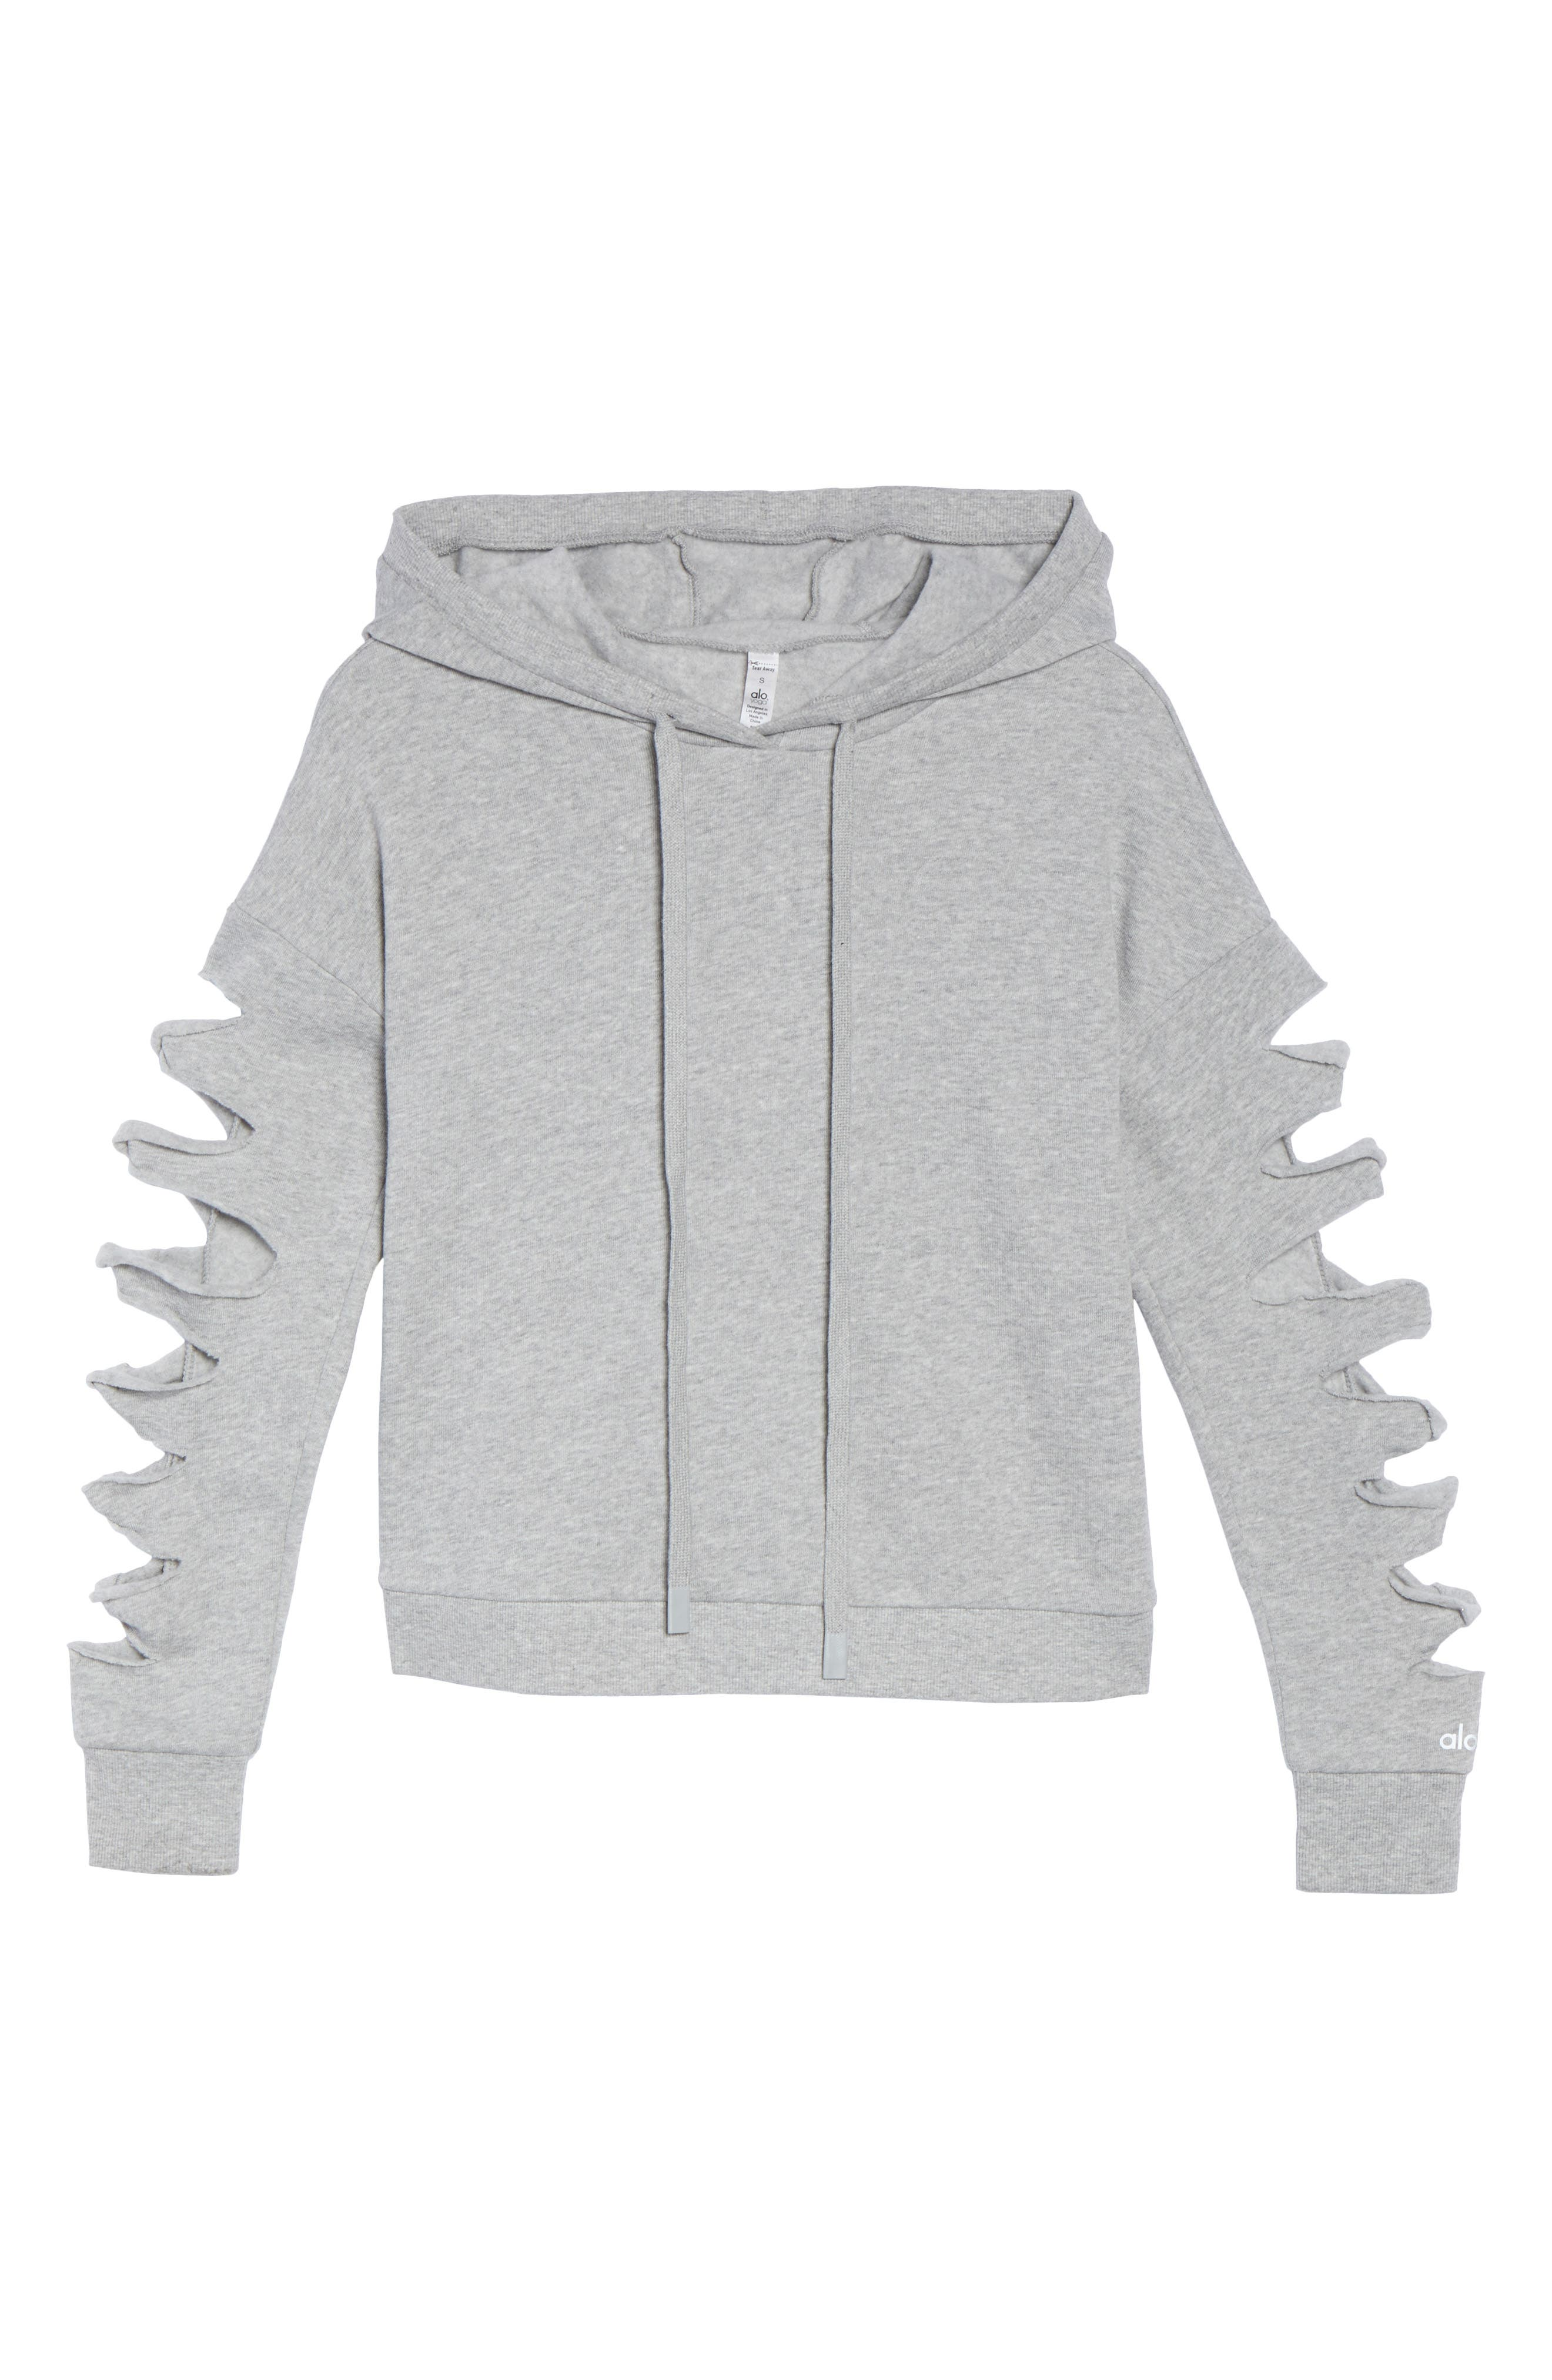 Slay Slashed Long Sleeve Hoodie,                             Alternate thumbnail 7, color,                             Dove Grey Heather